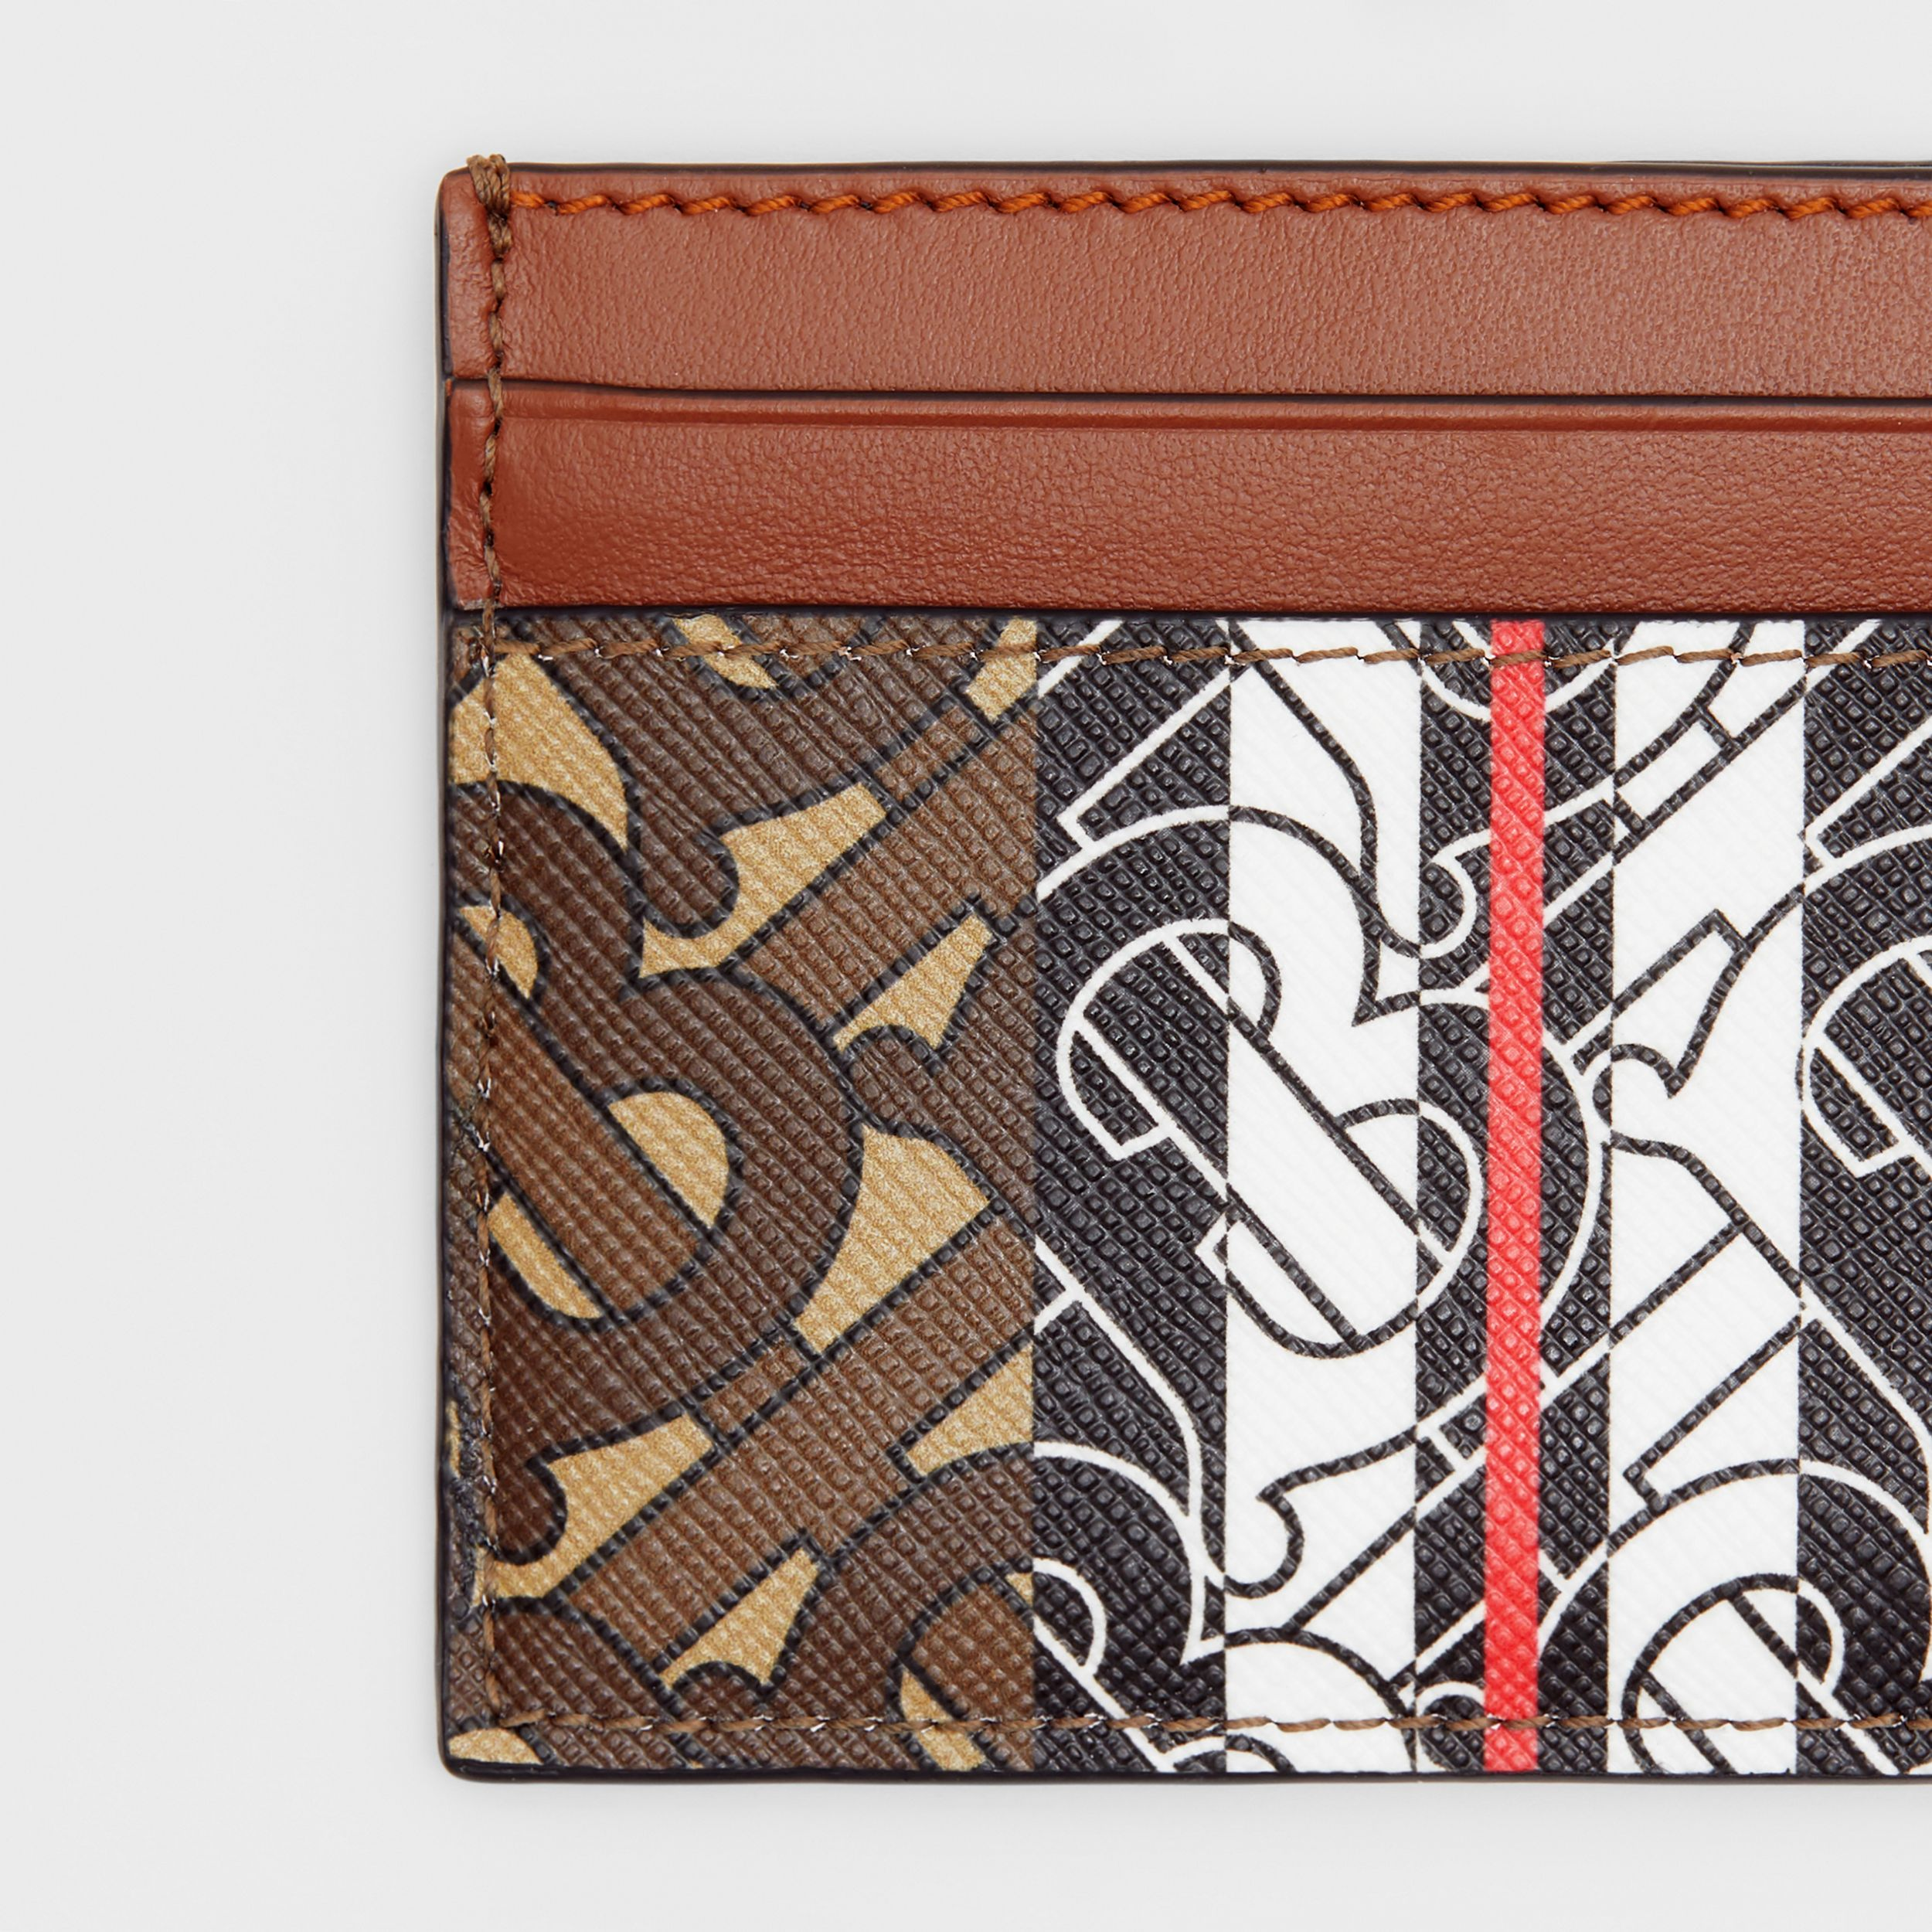 Monogram Stripe E-canvas Card Case in Bridle Brown | Burberry United Kingdom - 2